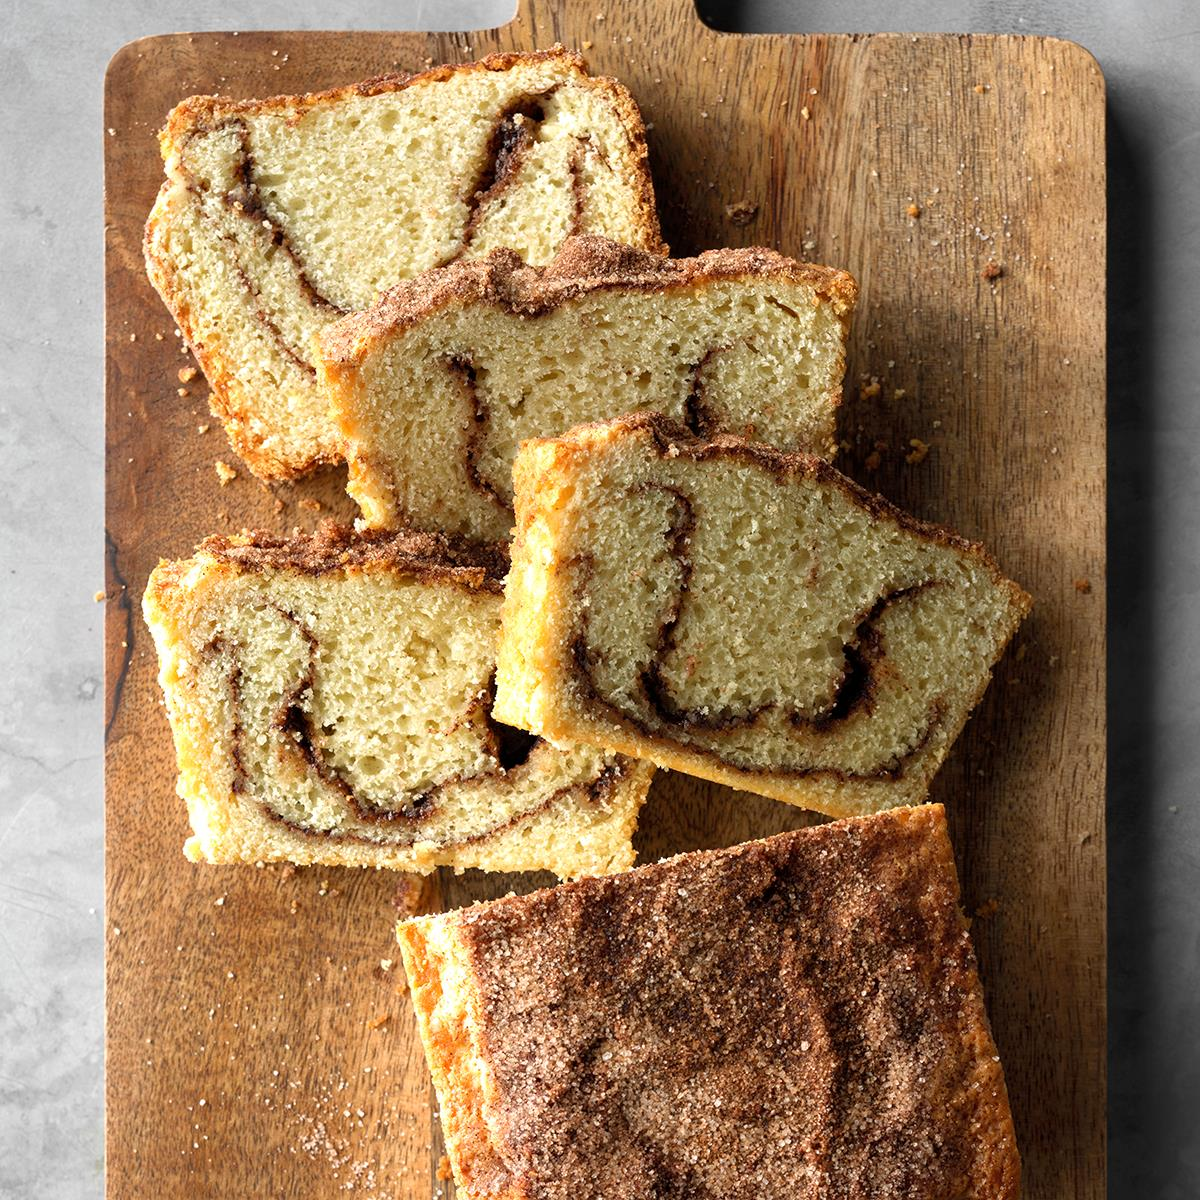 Country Cinnamon Swirl Bread Recipe How To Make It Taste Of Home